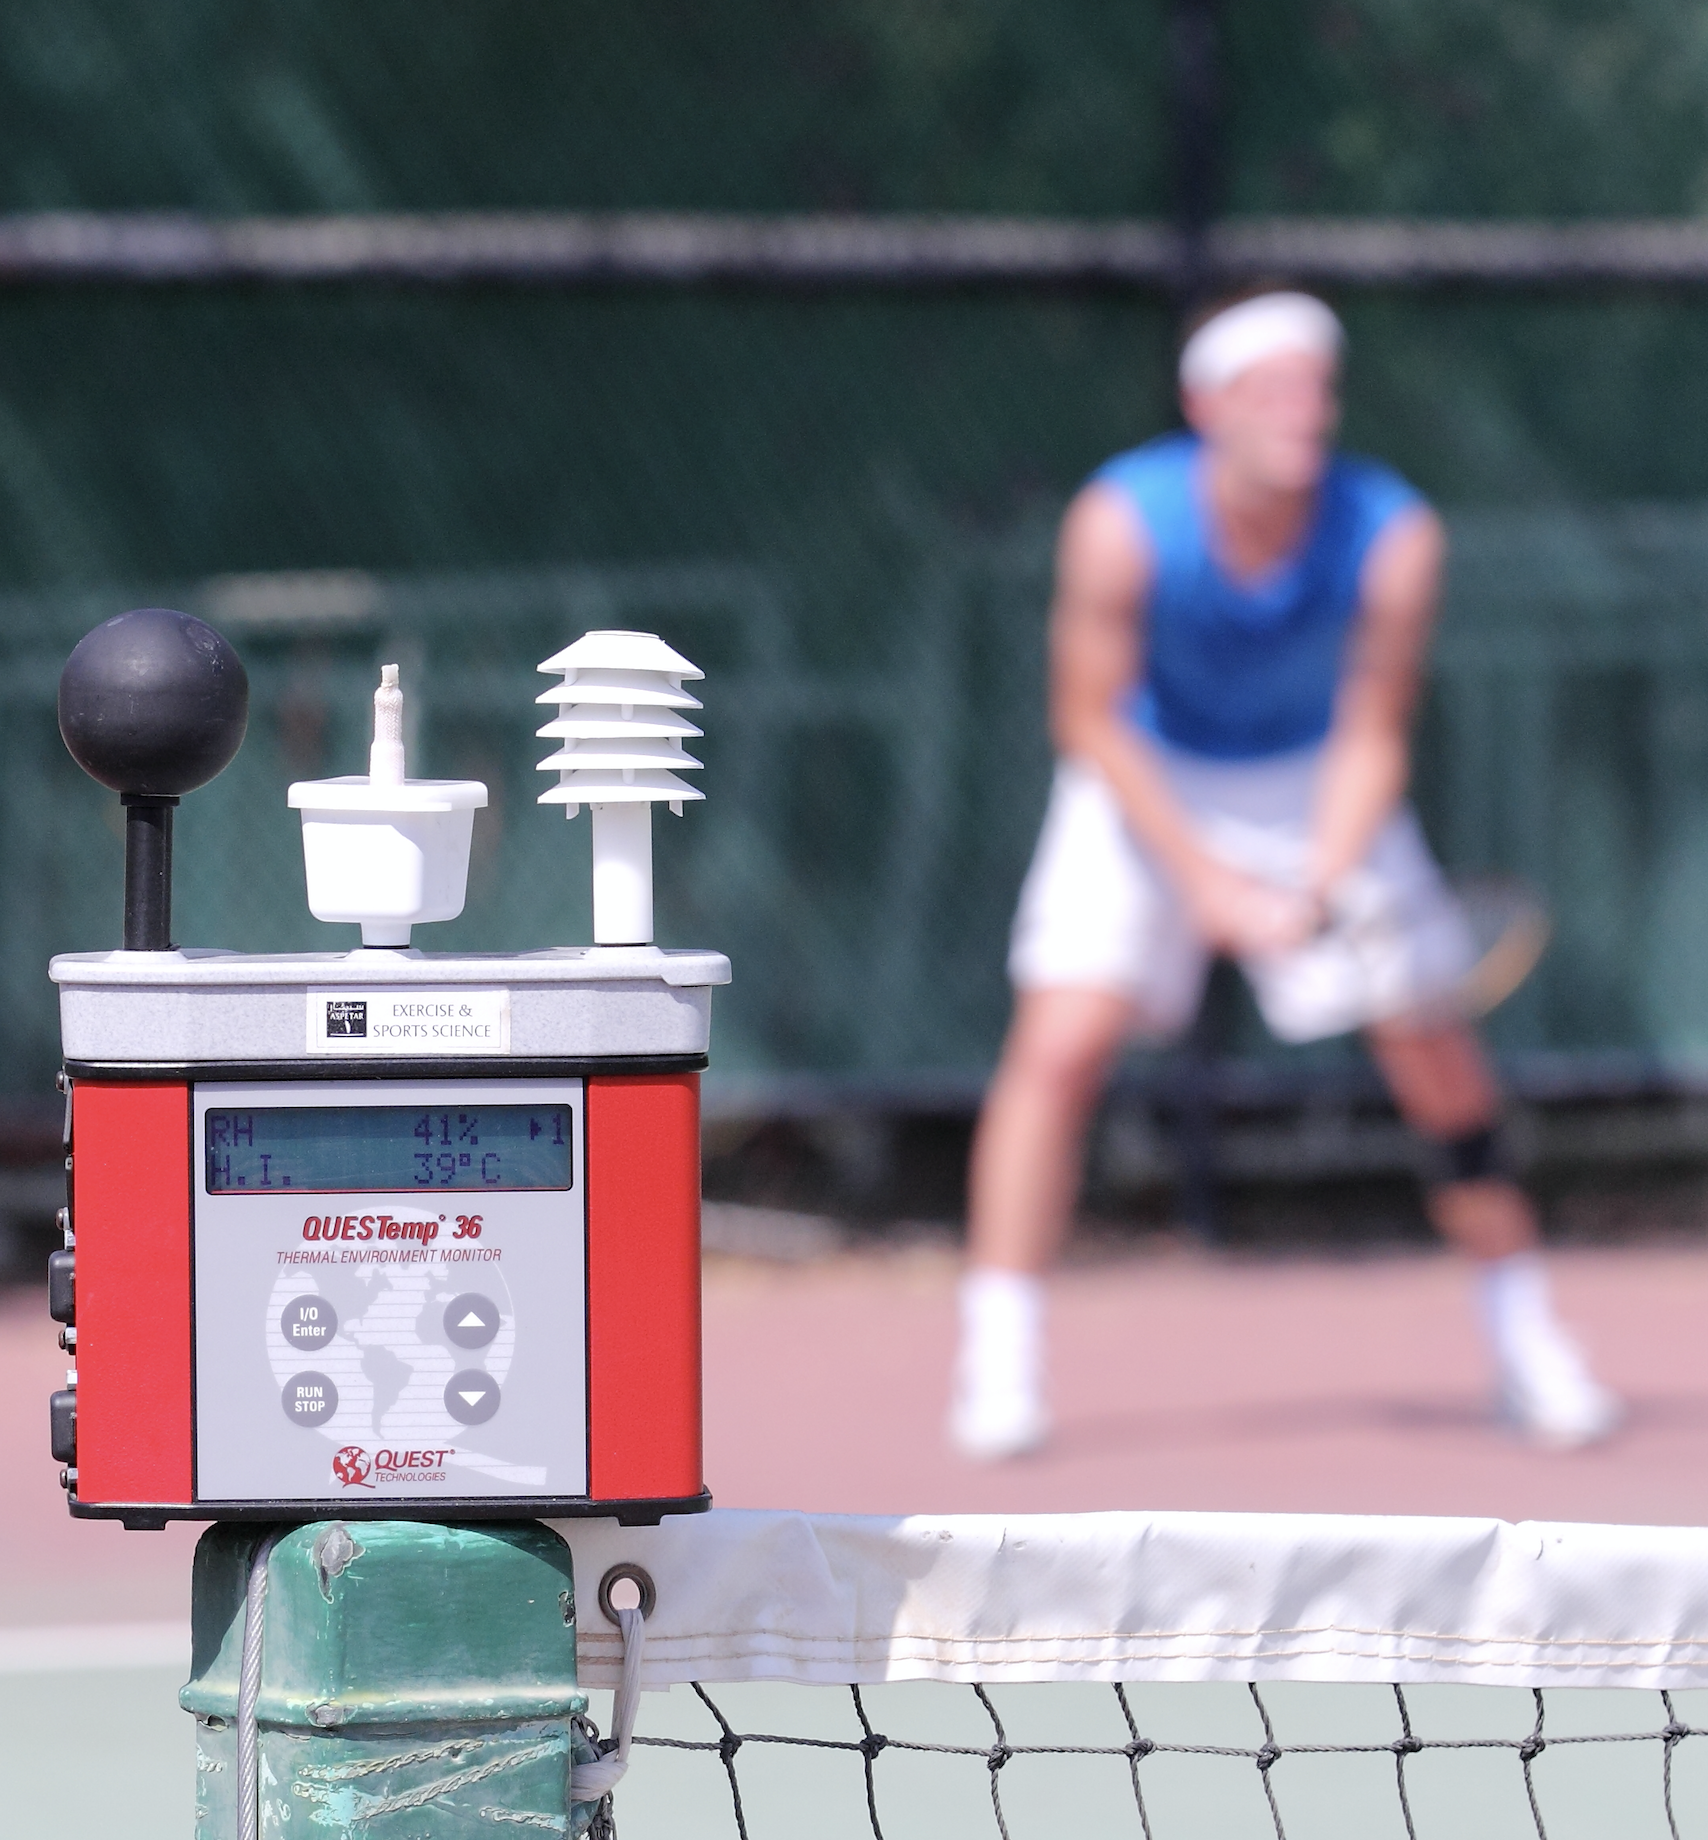 Playing tennis in the heat: thermal and physical performance responses -